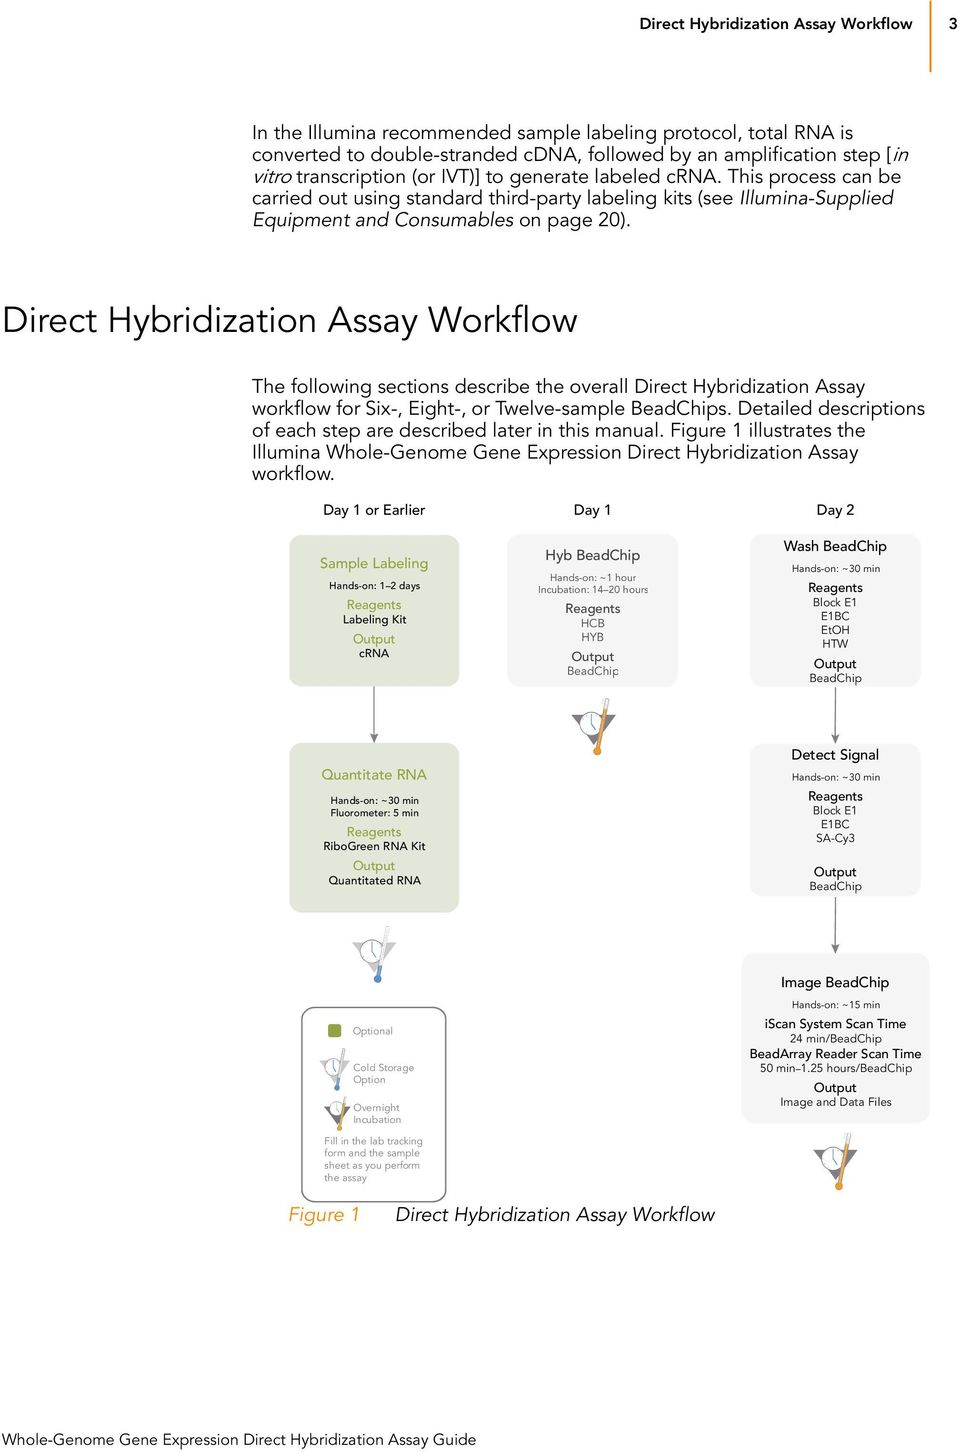 Direct Hybridization Assay Workflow The following sections describe the overall Direct Hybridization Assay workflow for Six-, Eight-, or Twelve-sample BeadChips.